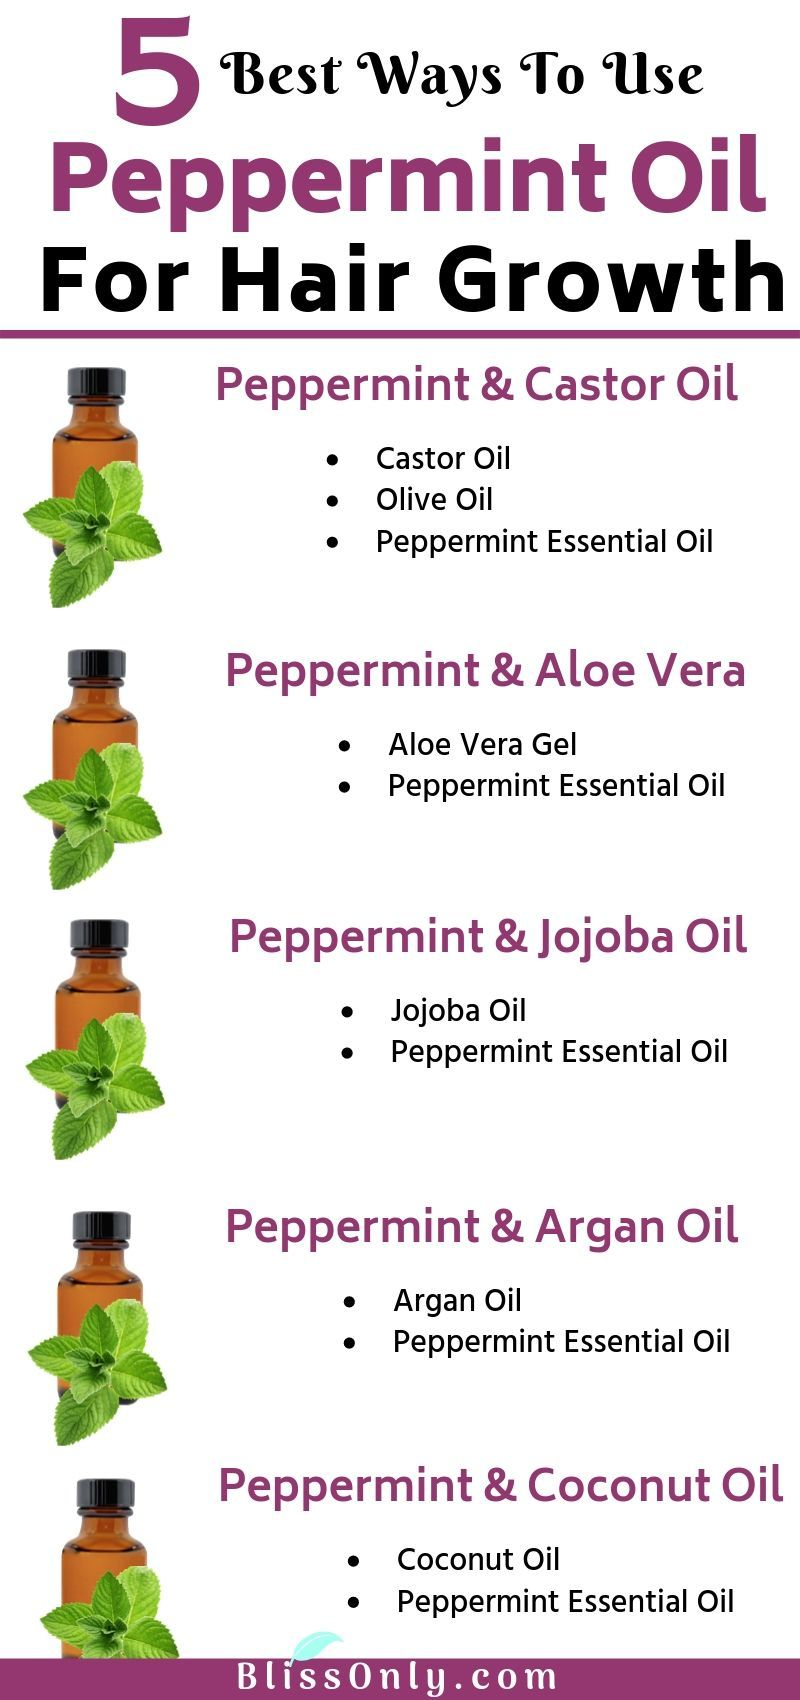 Peppermint Oil For Hair Growth 5 Effective Ways To Use It Hair